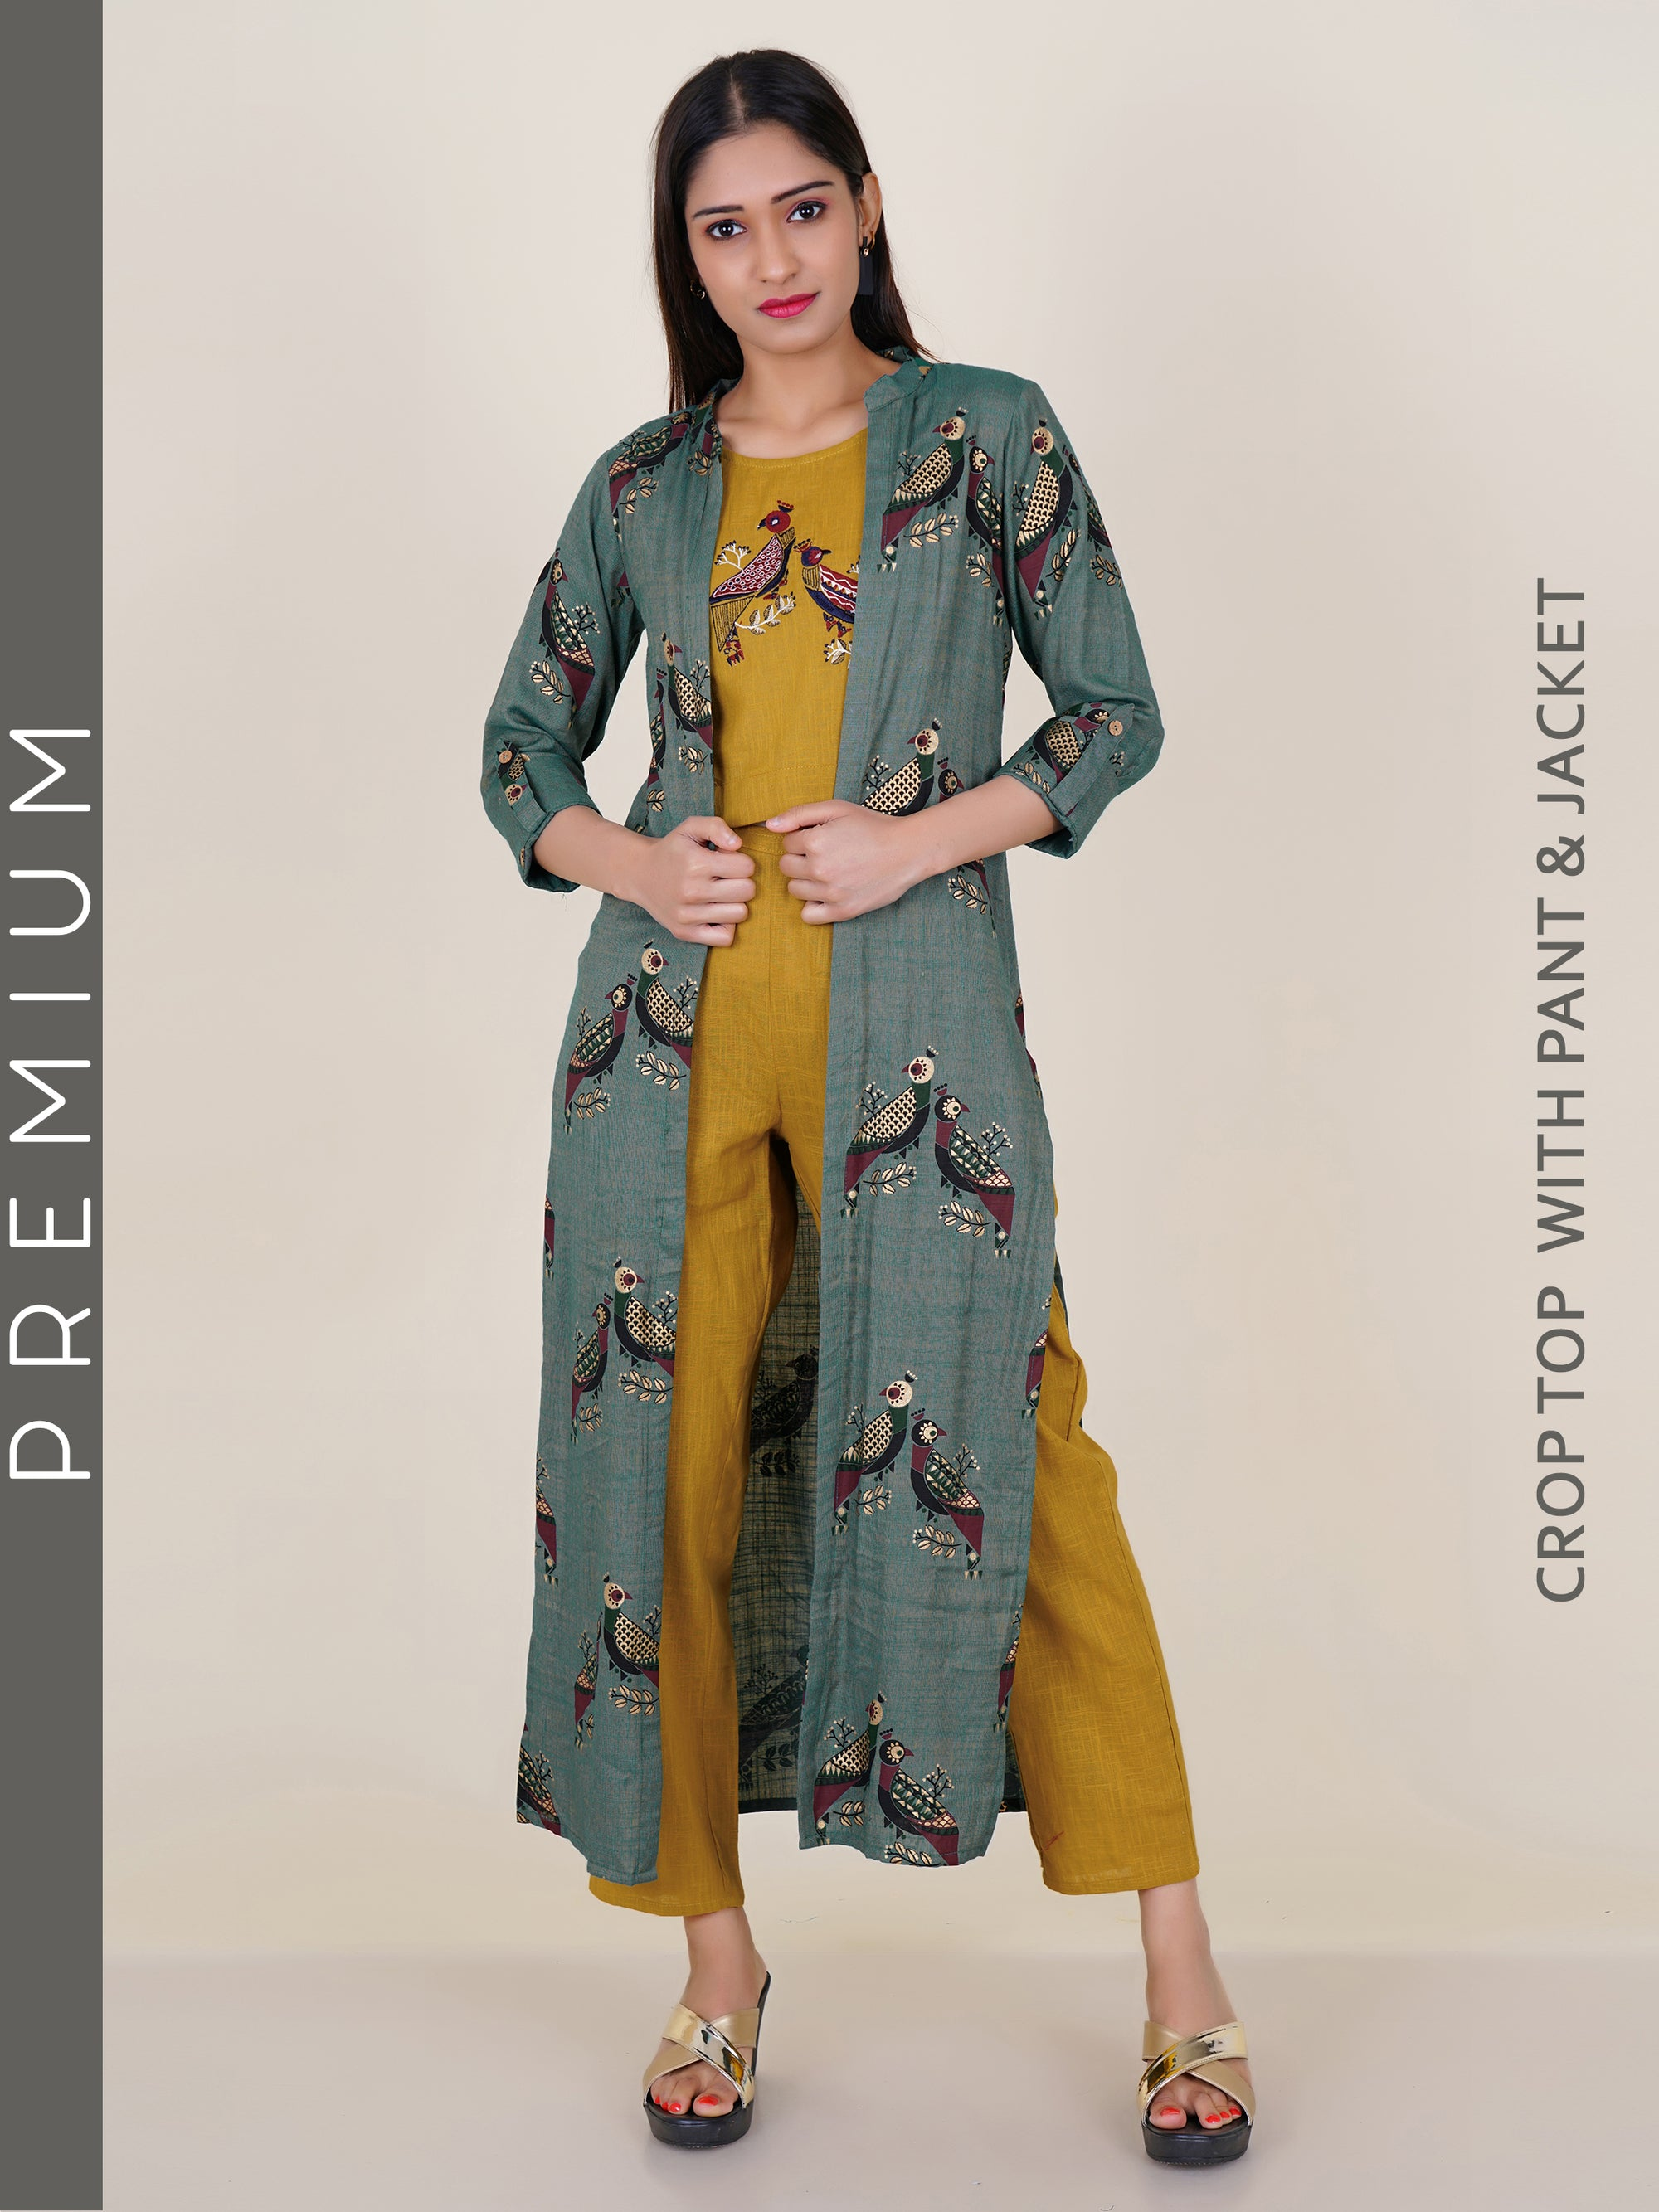 Resham Bird Buta Crop Top, Pant & Printed Long Jacket Set